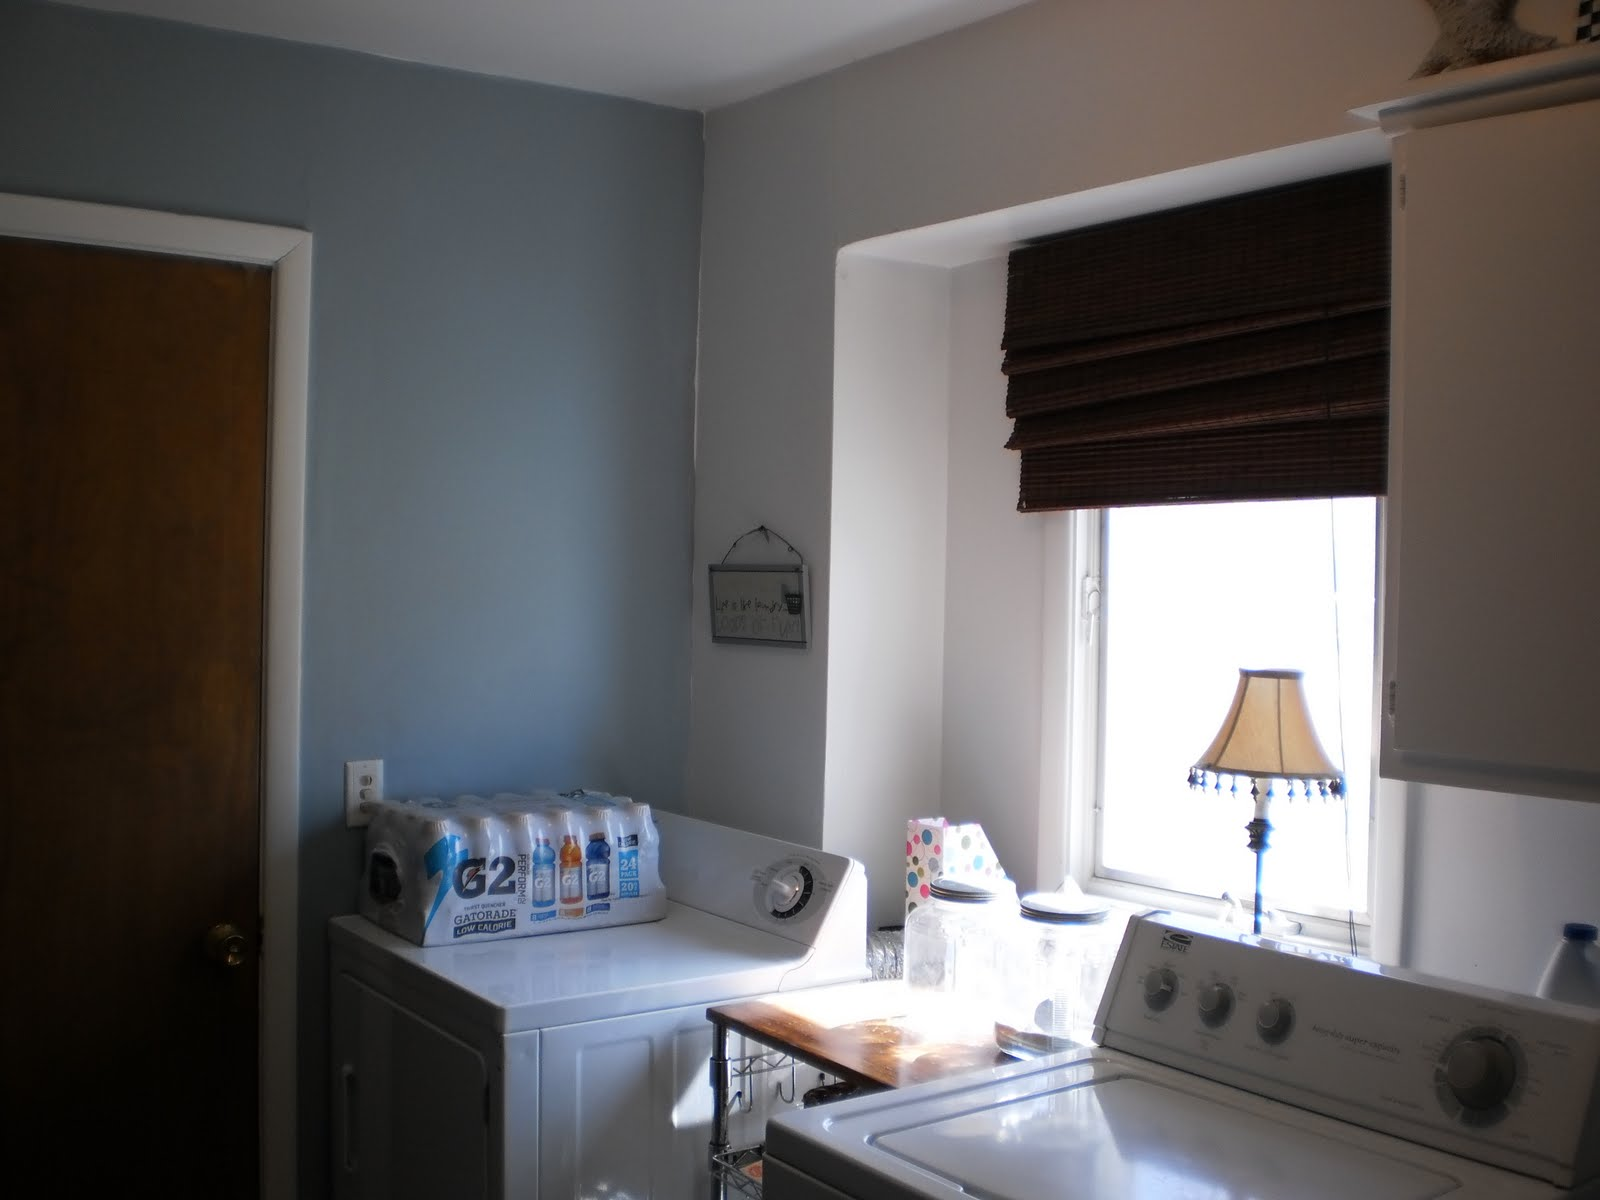 Home Preferred: Laundry Room and Craft Closet